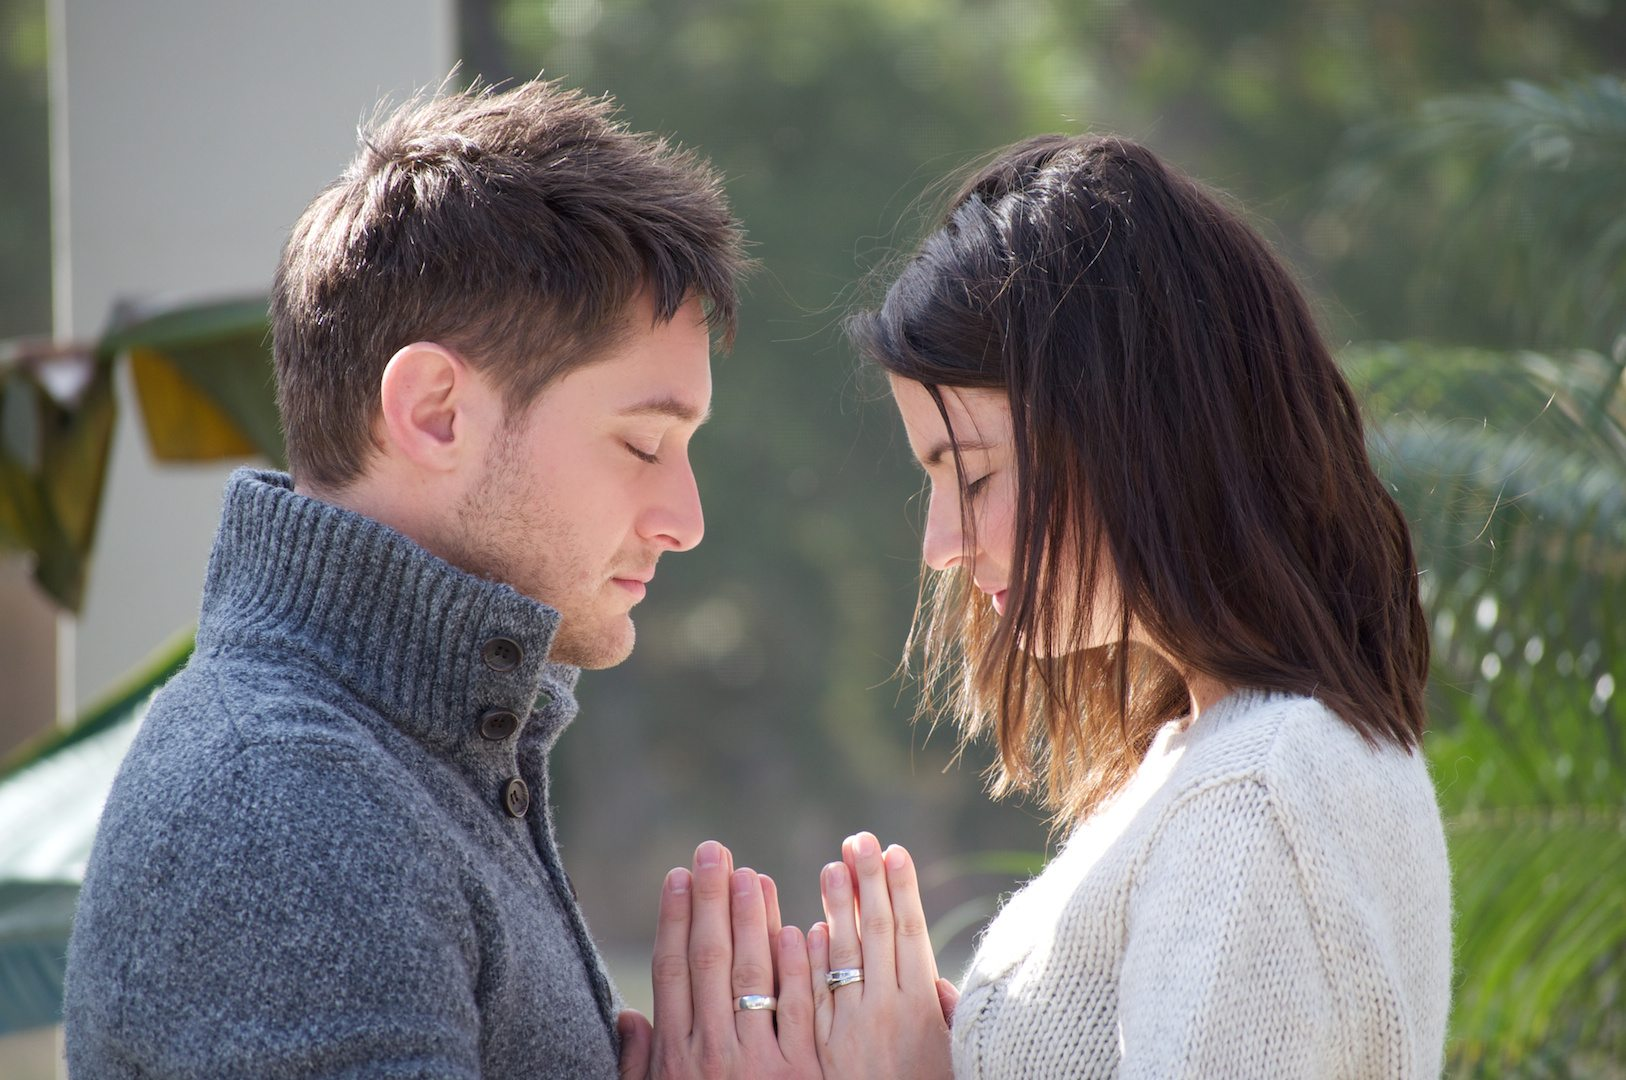 Praying as a Couple